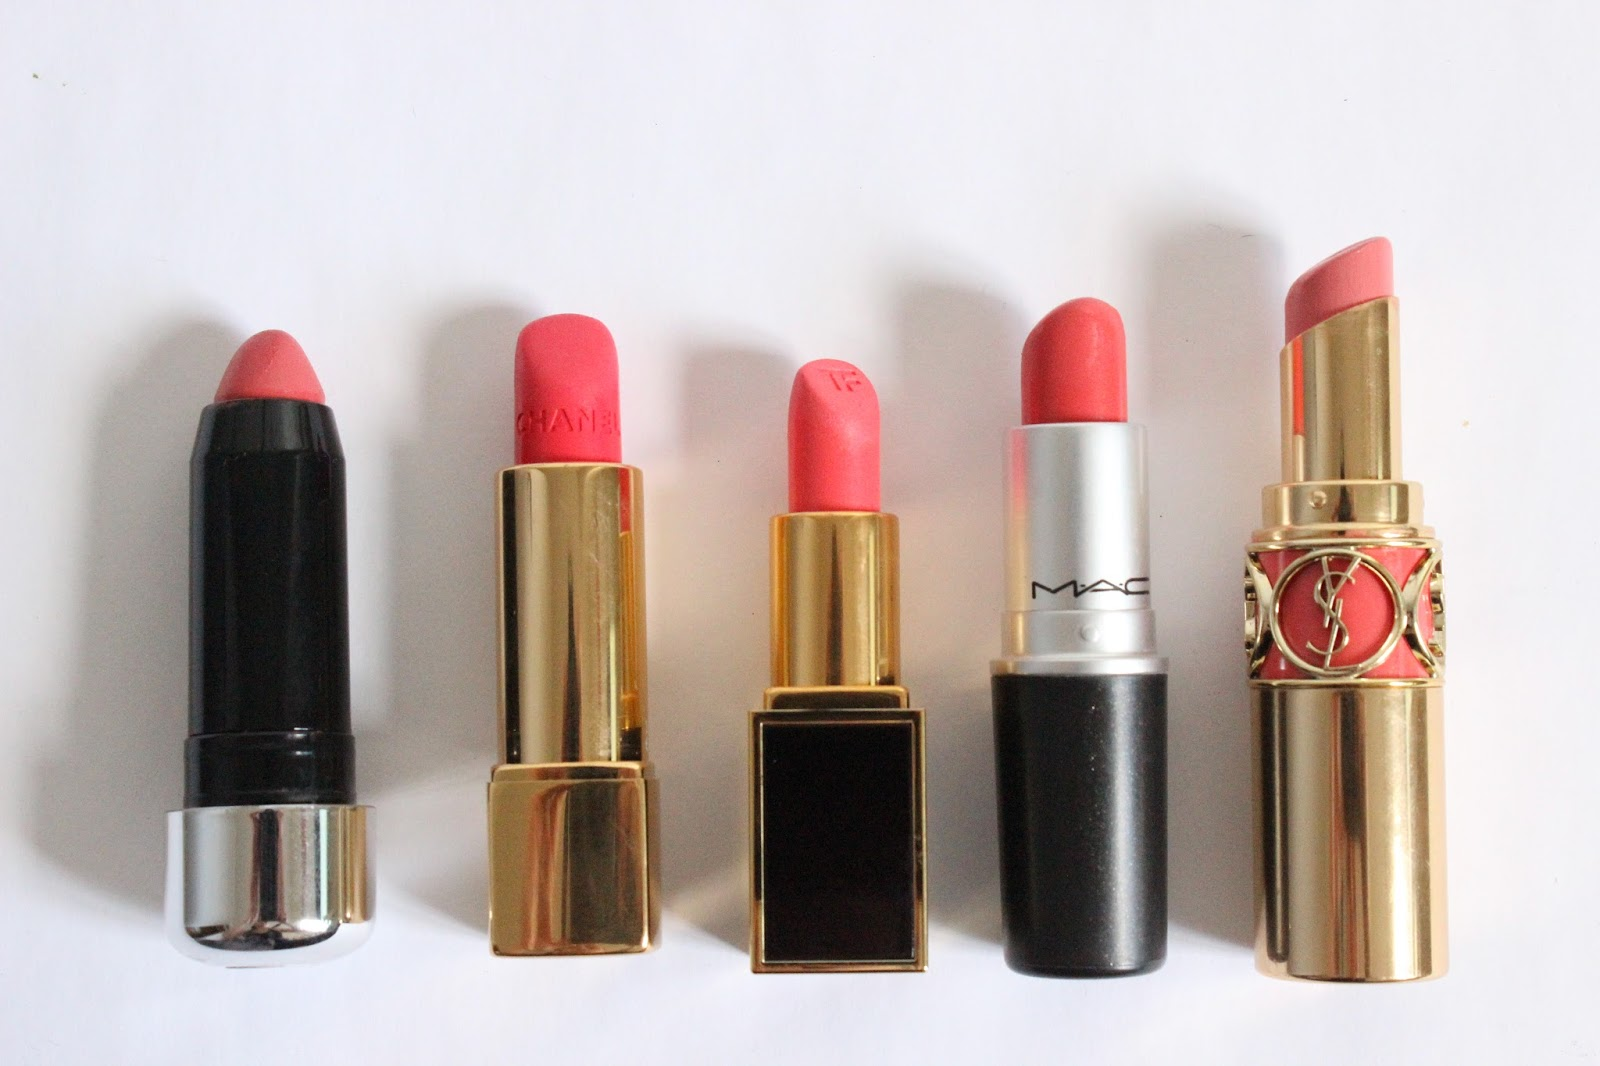 Top 5 | Coral Lipsticks L-R Marc Jacobs Heartbreaker, Chanel Melodieuse, Tom Ford Matthew, Mac Vegas Volt, YSL Peach Passion.